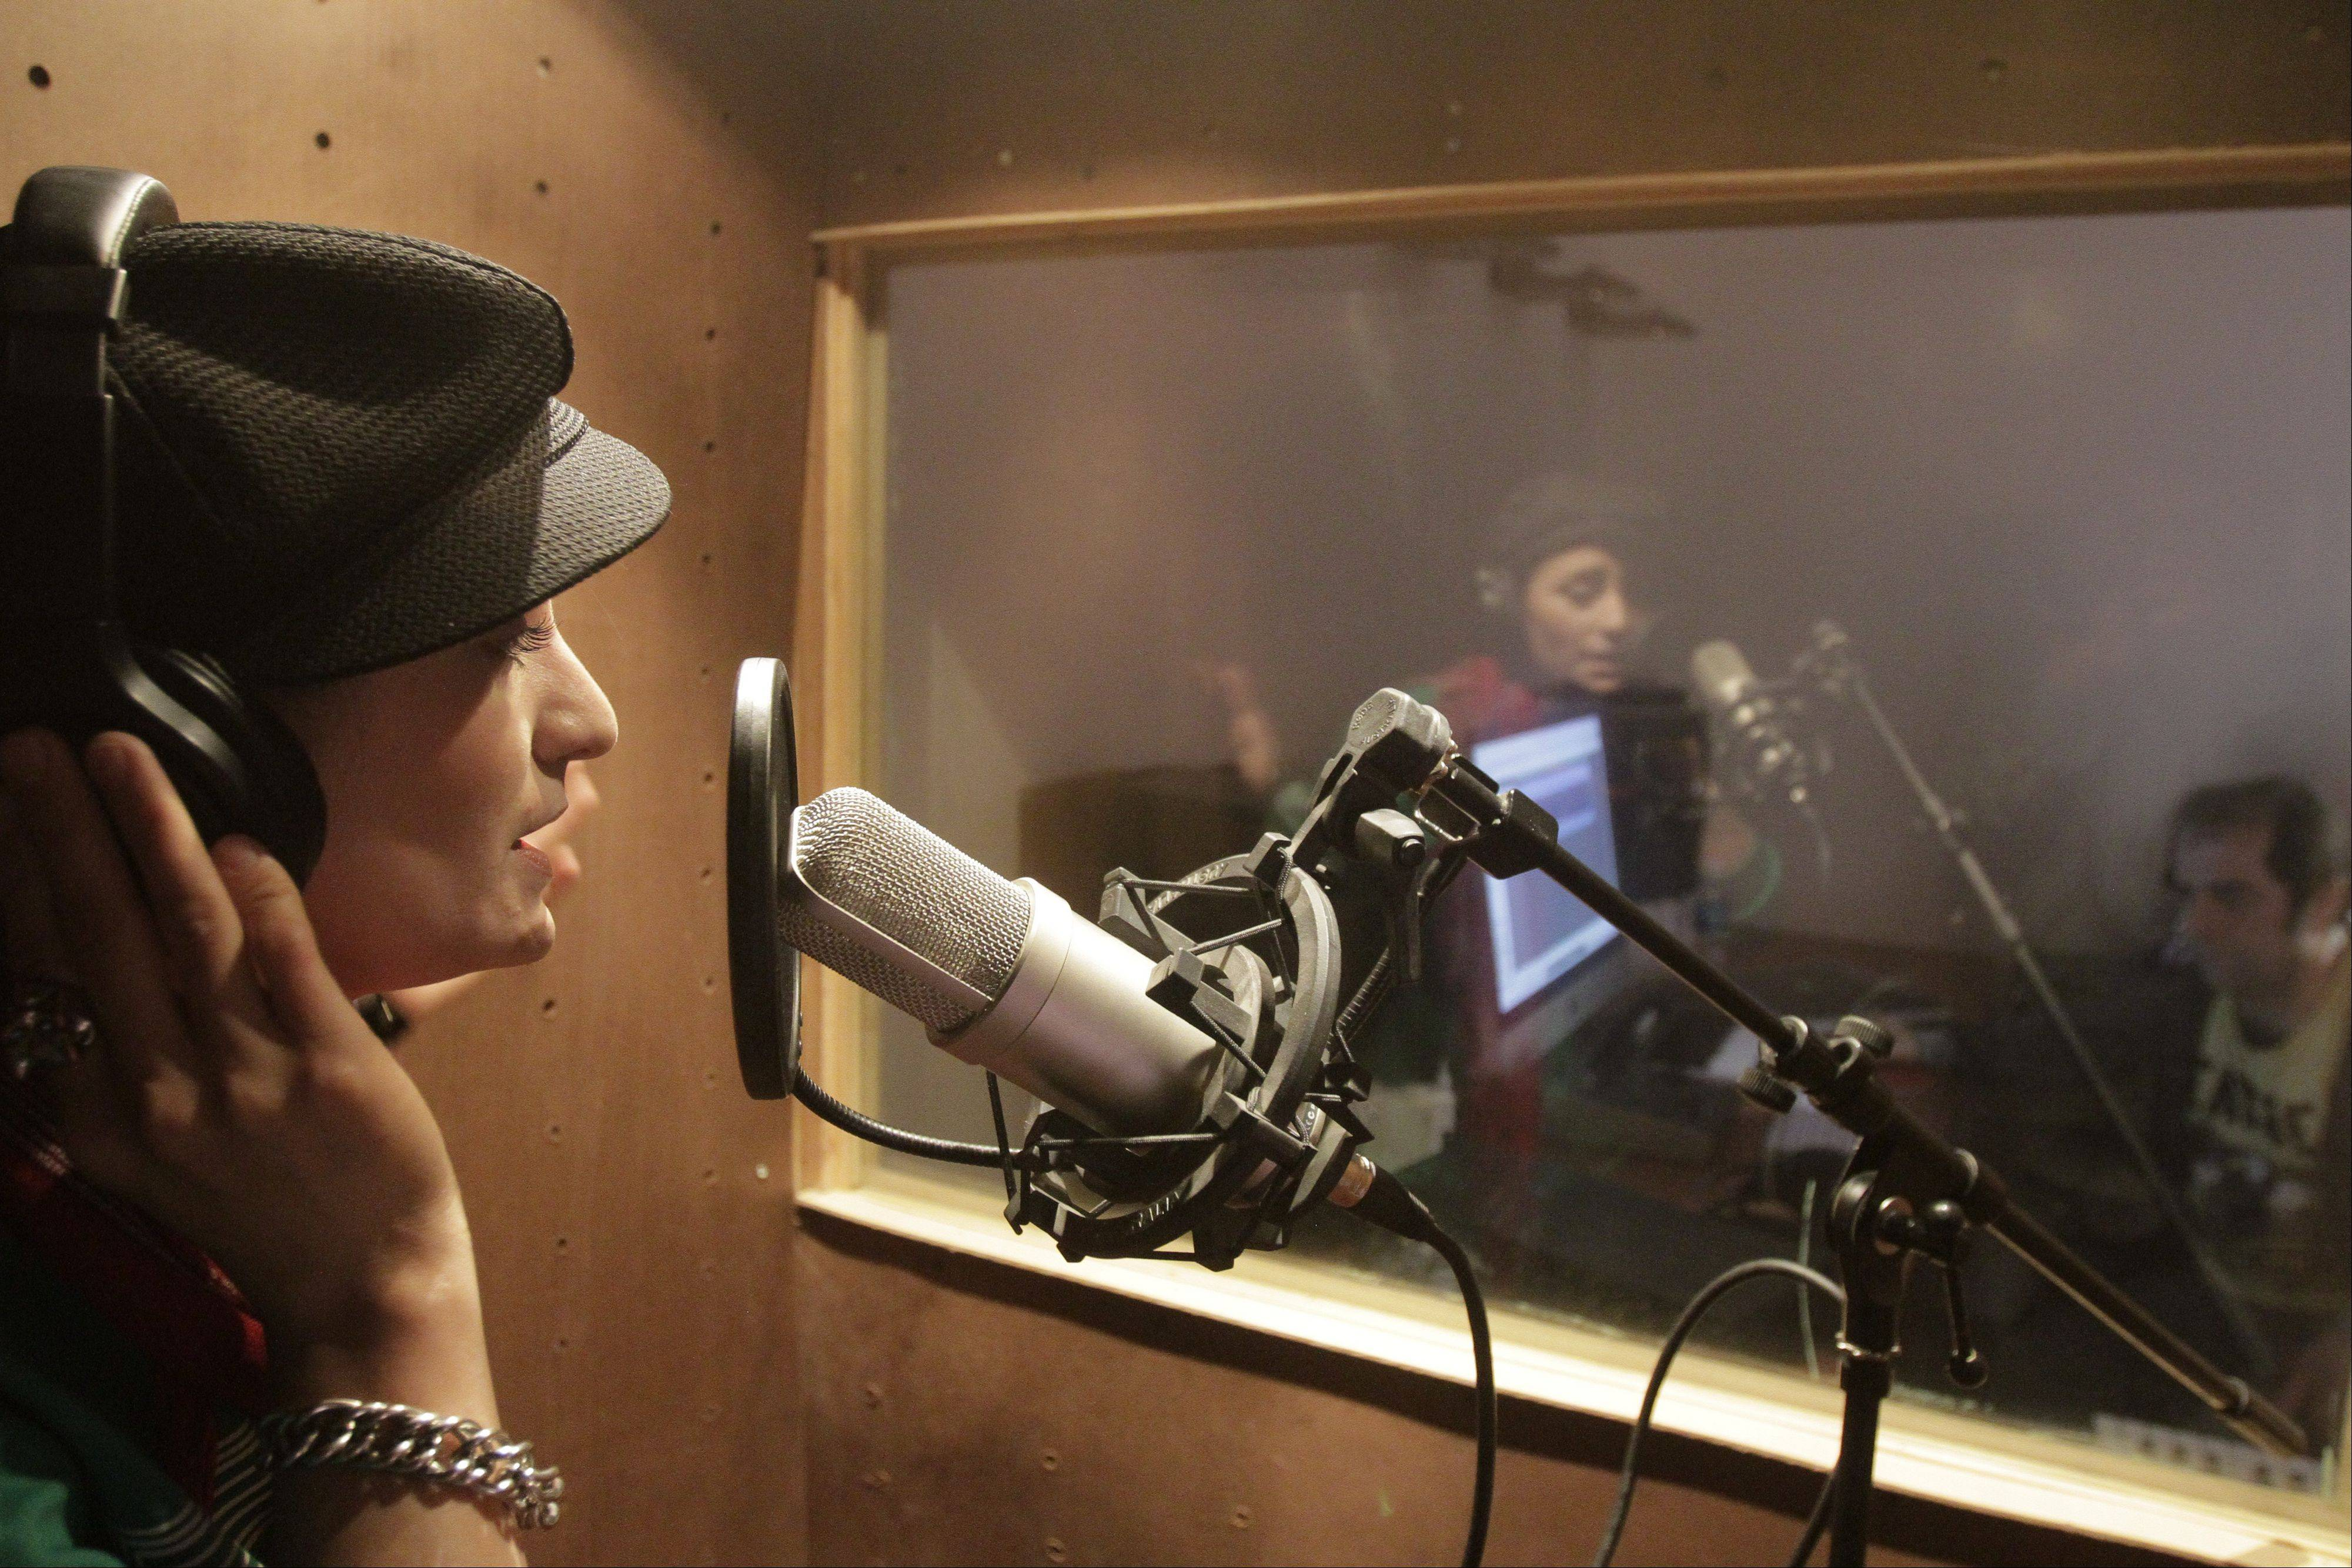 In this Wednesday, Oct. 3, 2012 photo, Afghanistan's first female rapper Sosan Firooz sings in a studio in Kabul, Afghanistan. Firooz, 23-year-old singer is making history in her homeland where society frowns on women who take the stage.